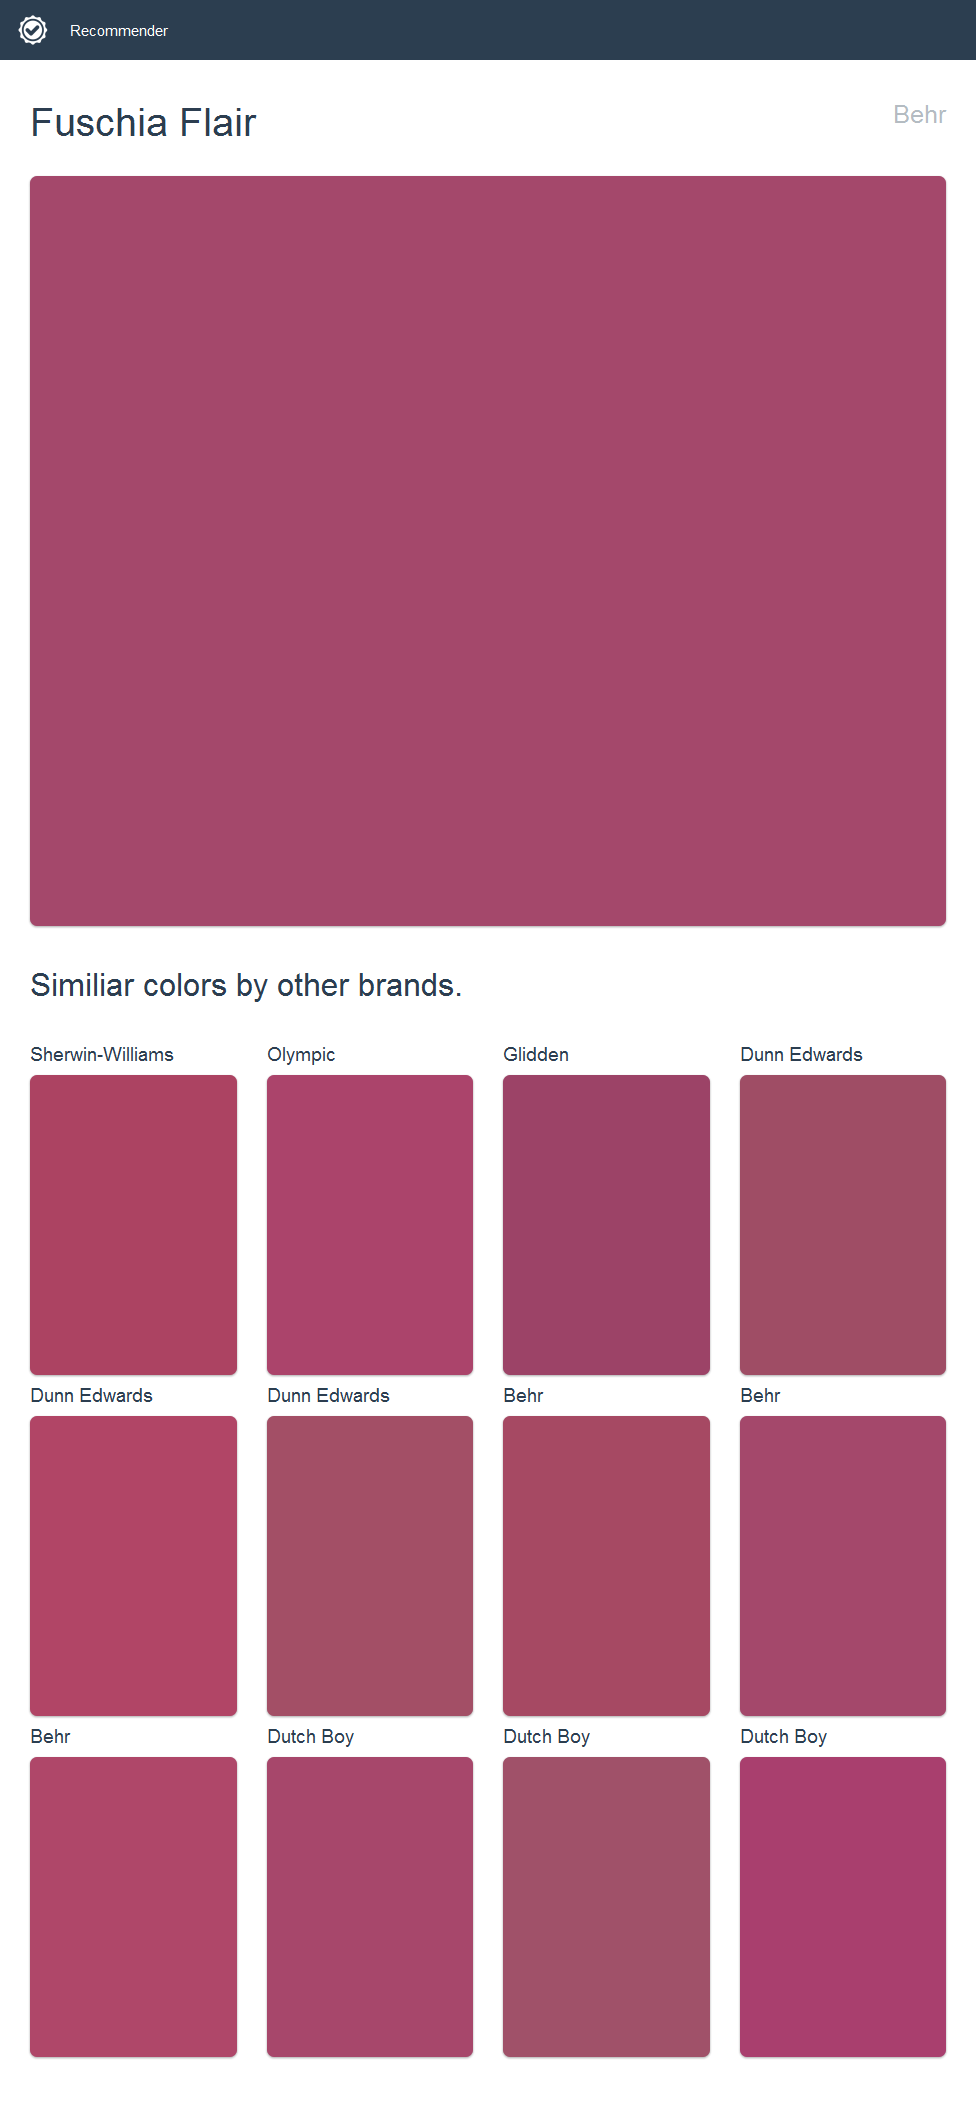 Fuschia Flair, Behr. Click the image to see similiar colors by other ...